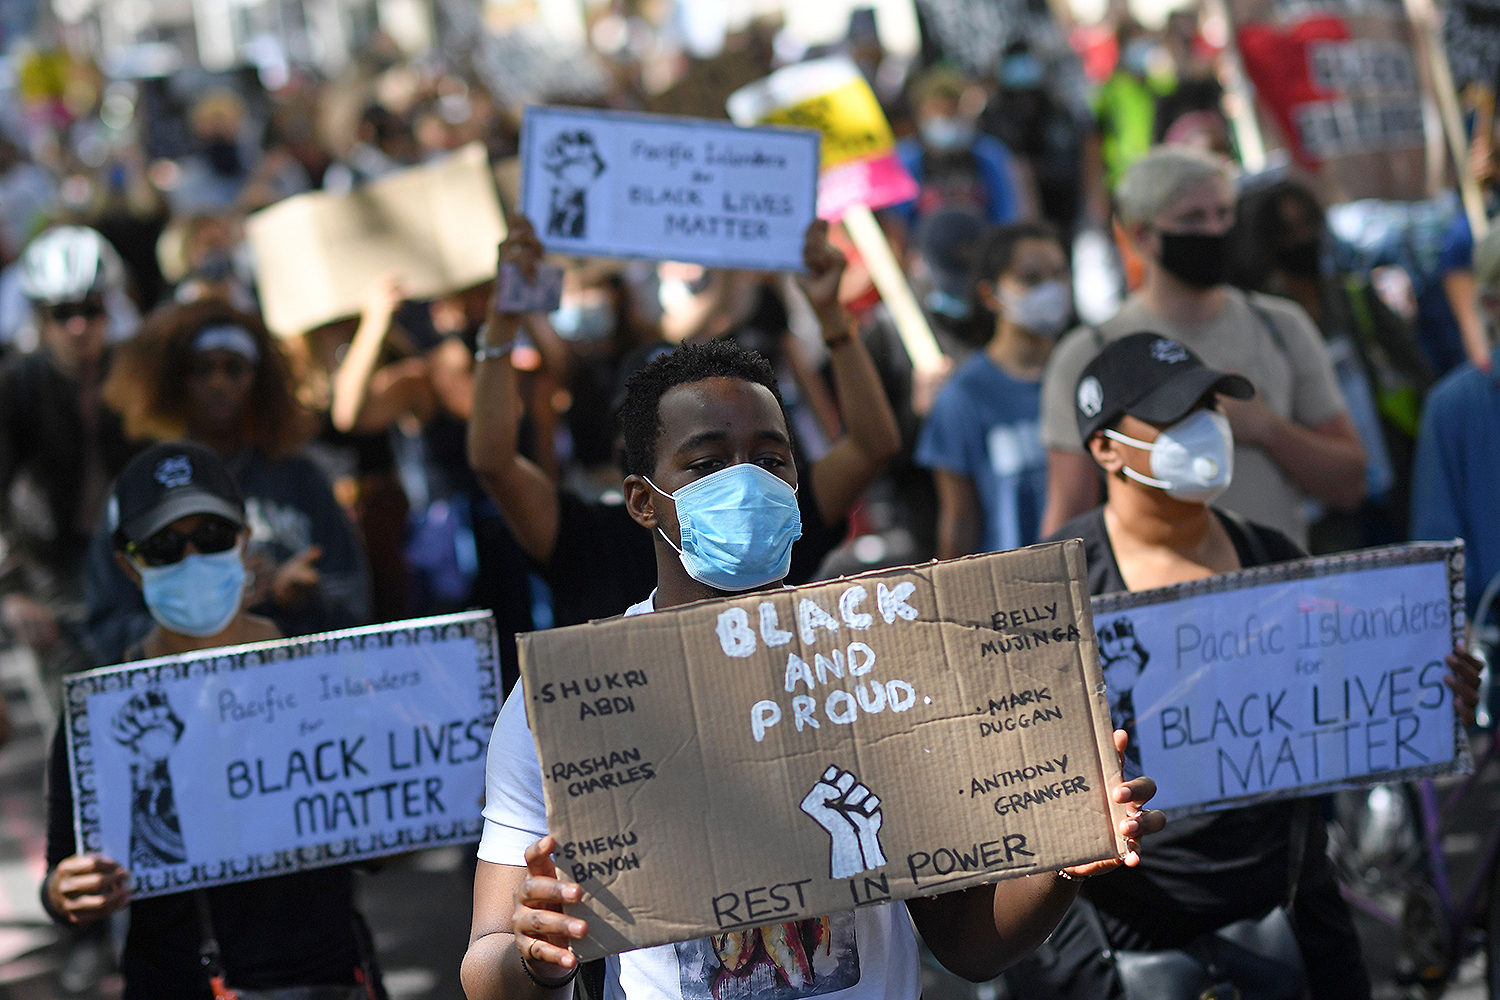 Protesters march down Park Lane in London on July 5 in support of the Black Lives Matter movement. JUSTIN TALLIS/AFP via Getty Images